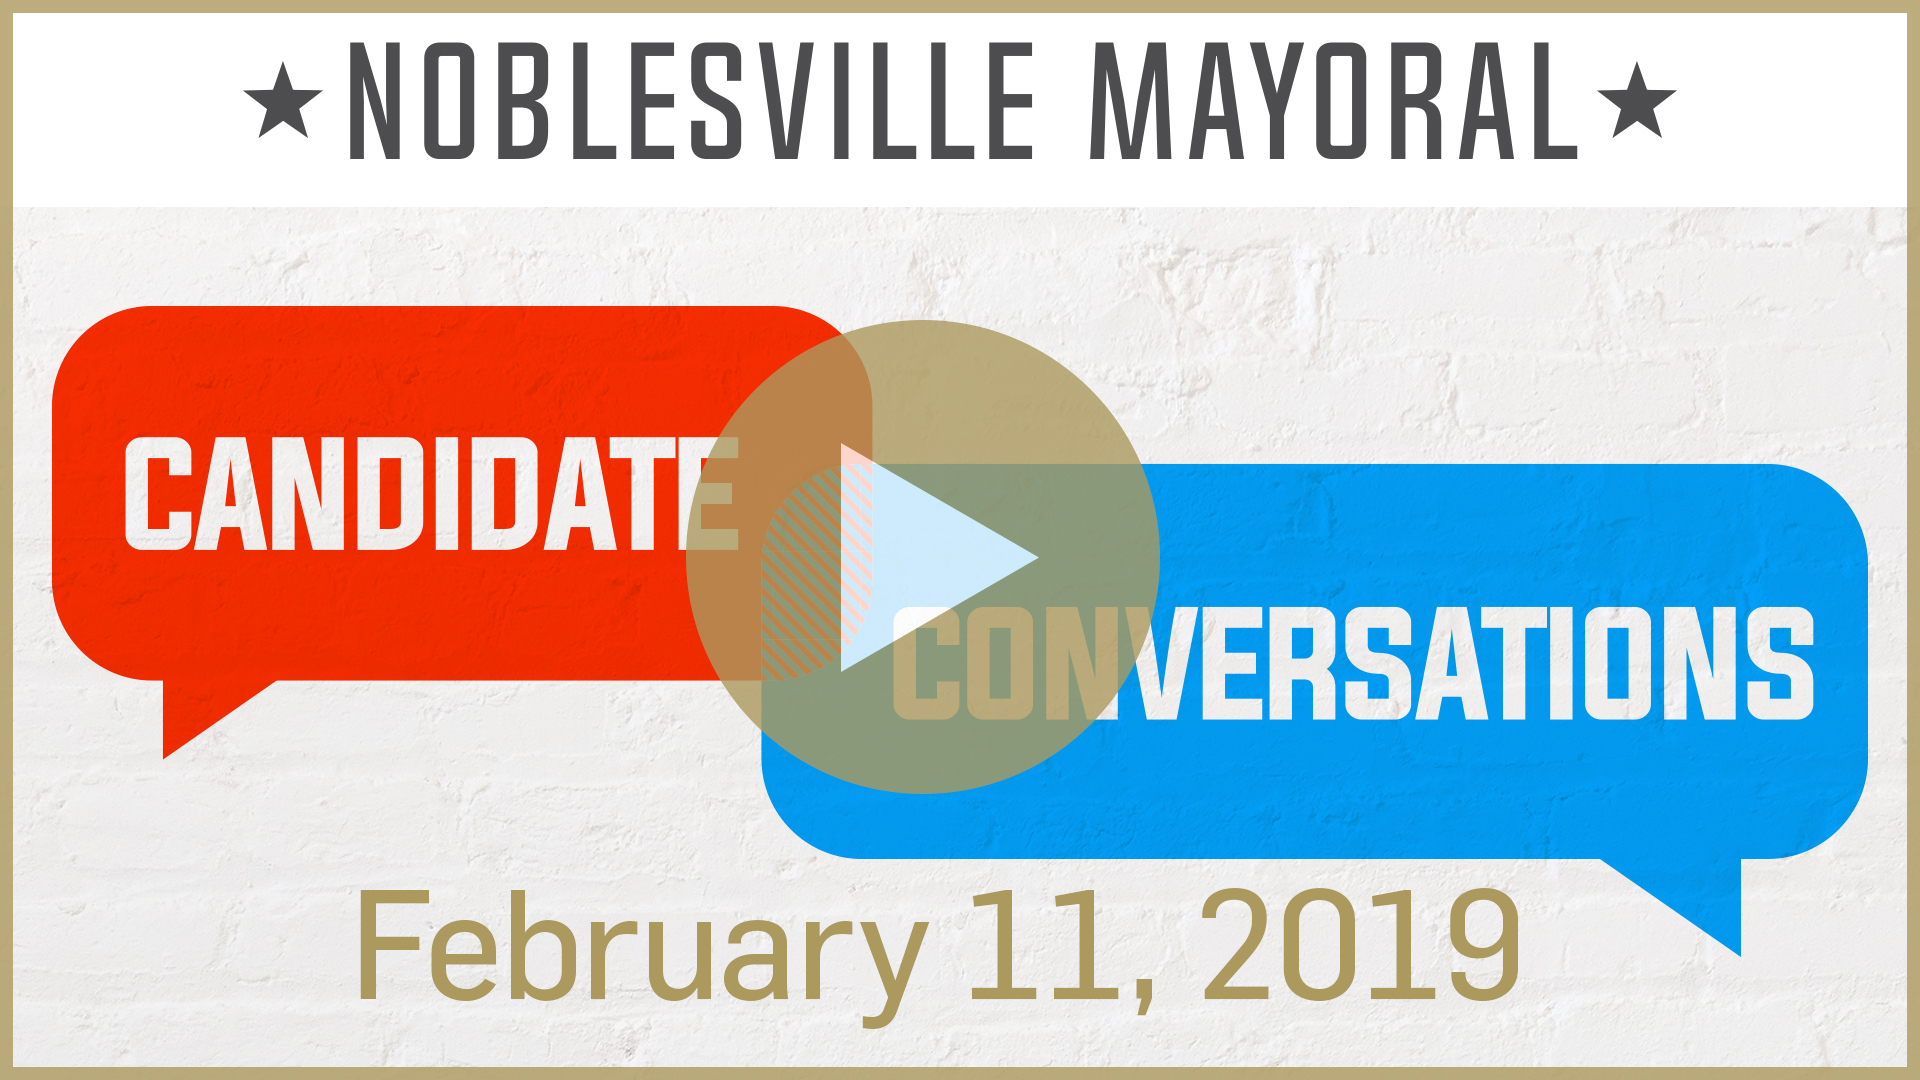 Noblesville Mayoral Candidate Conversations- February 11, 2019